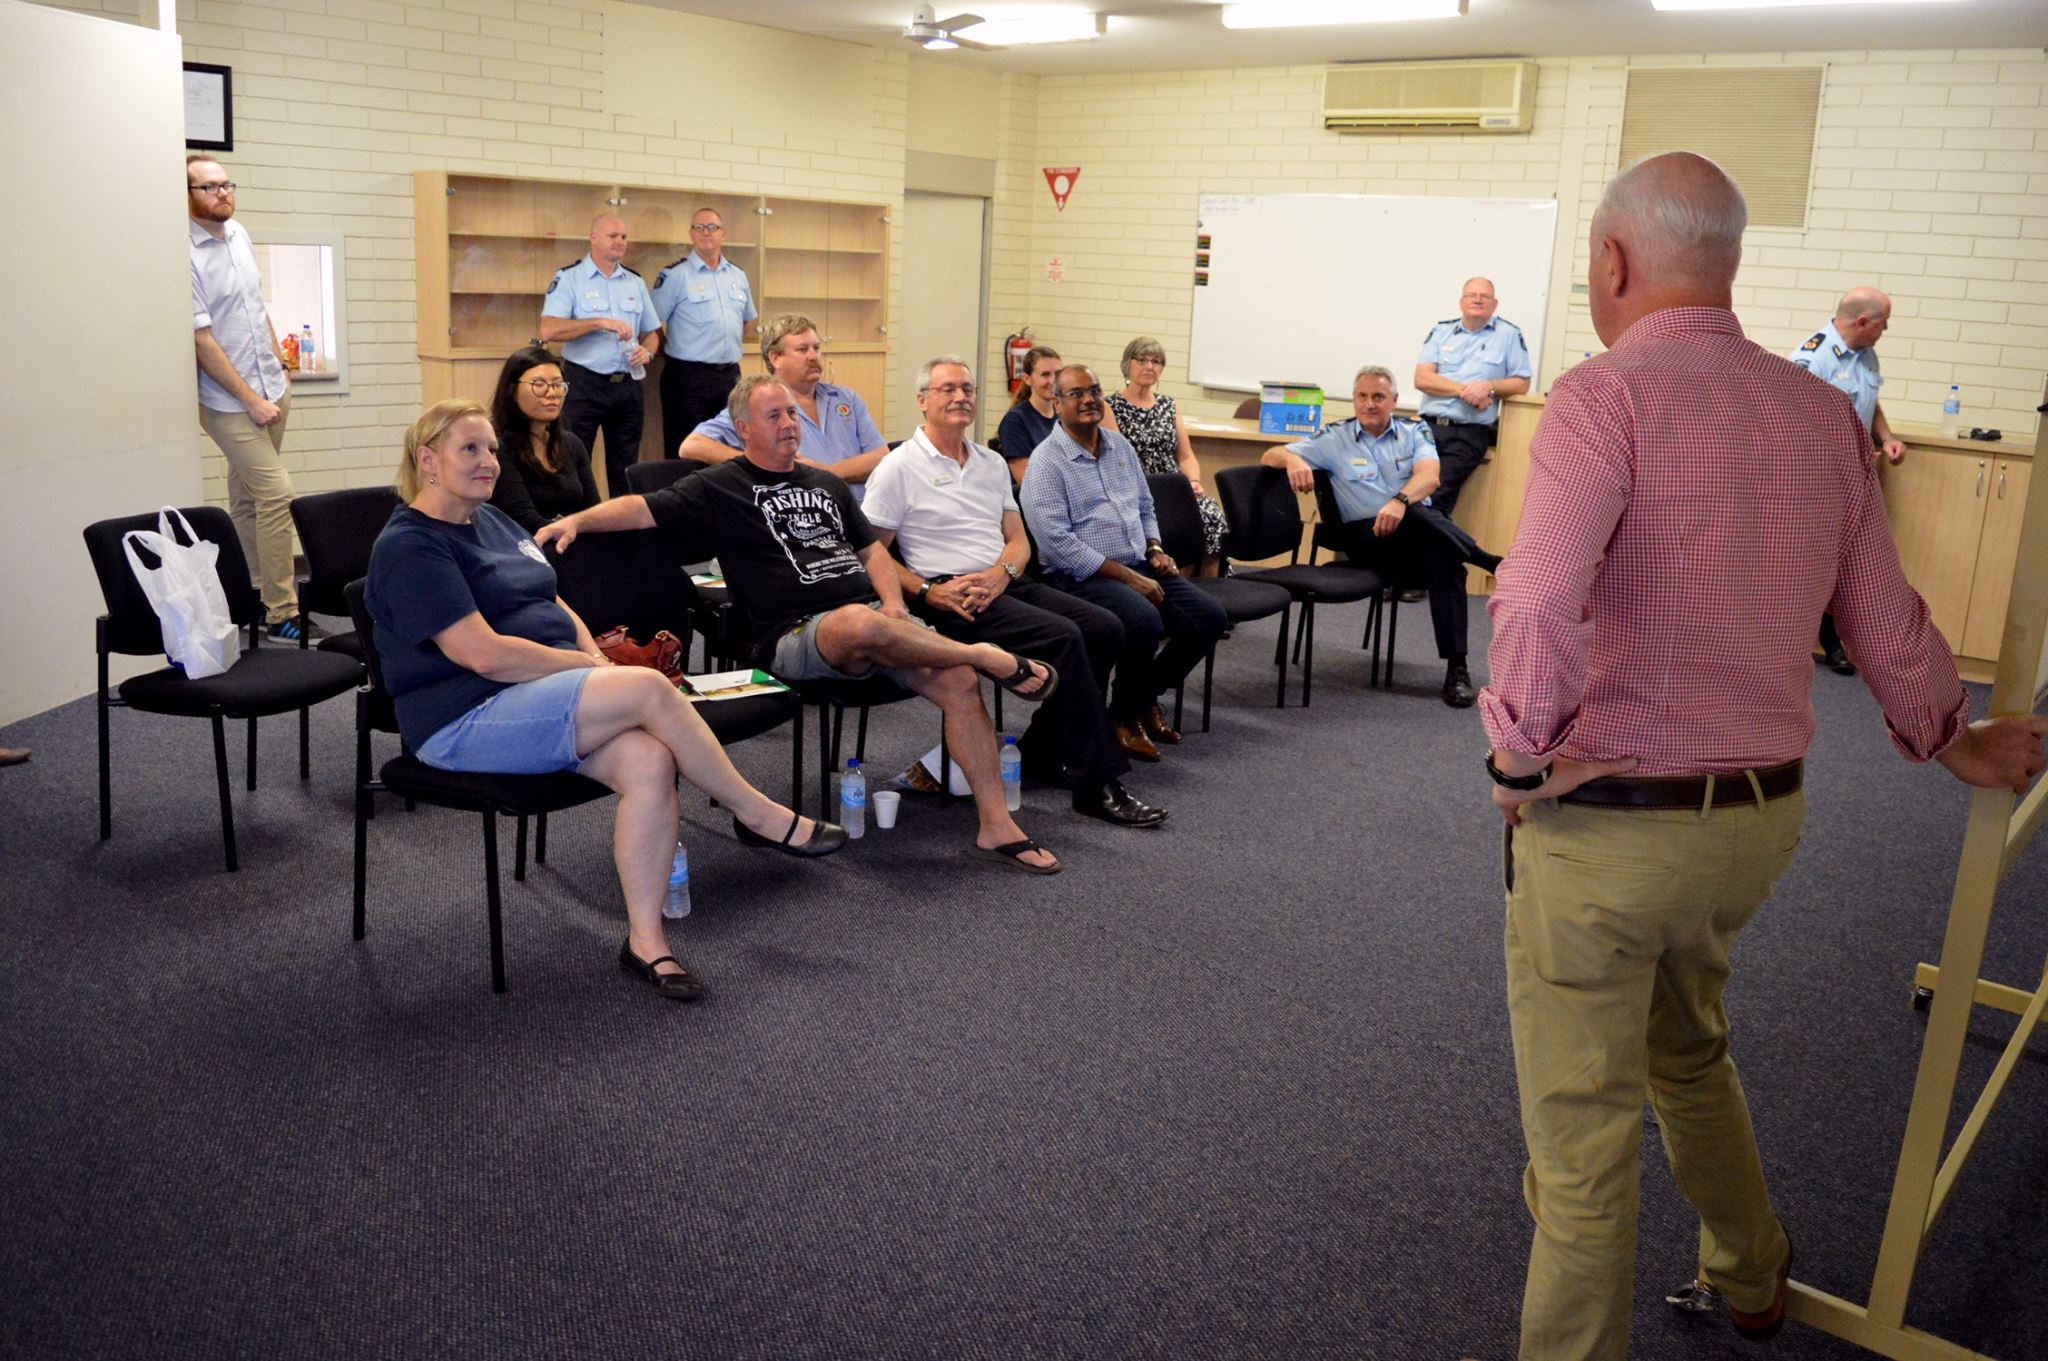 Emergency Services Minister Hon Fran Logan, FES Commissioner Darren Klemm, DFES Rural Fire Division Acting Executive Director John Tillman and other DFES and Ministerial staff explaining the Government's recent changes to emergency service volunteers in the North West. Photo: Facebook